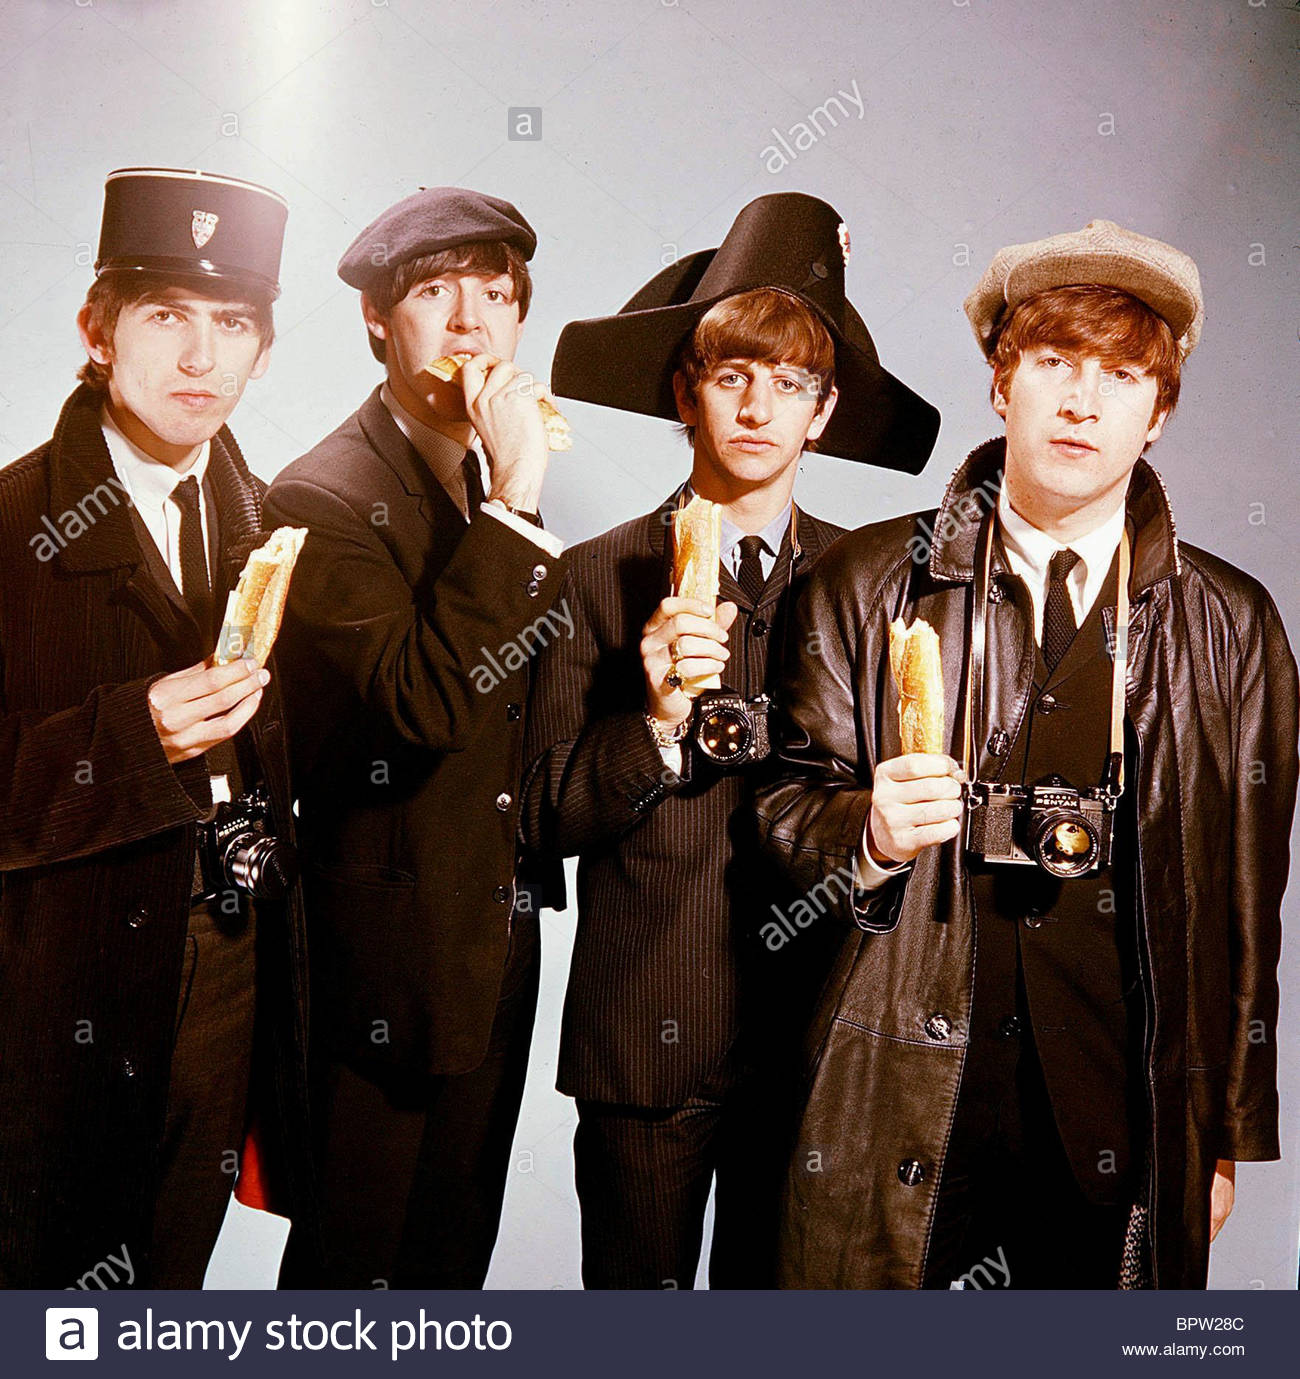 GEORGE HARRISON PAUL MCCARTNEY Ringo Starr & JOHN LENNON THE BEATLES (1964). Imagen De Stock